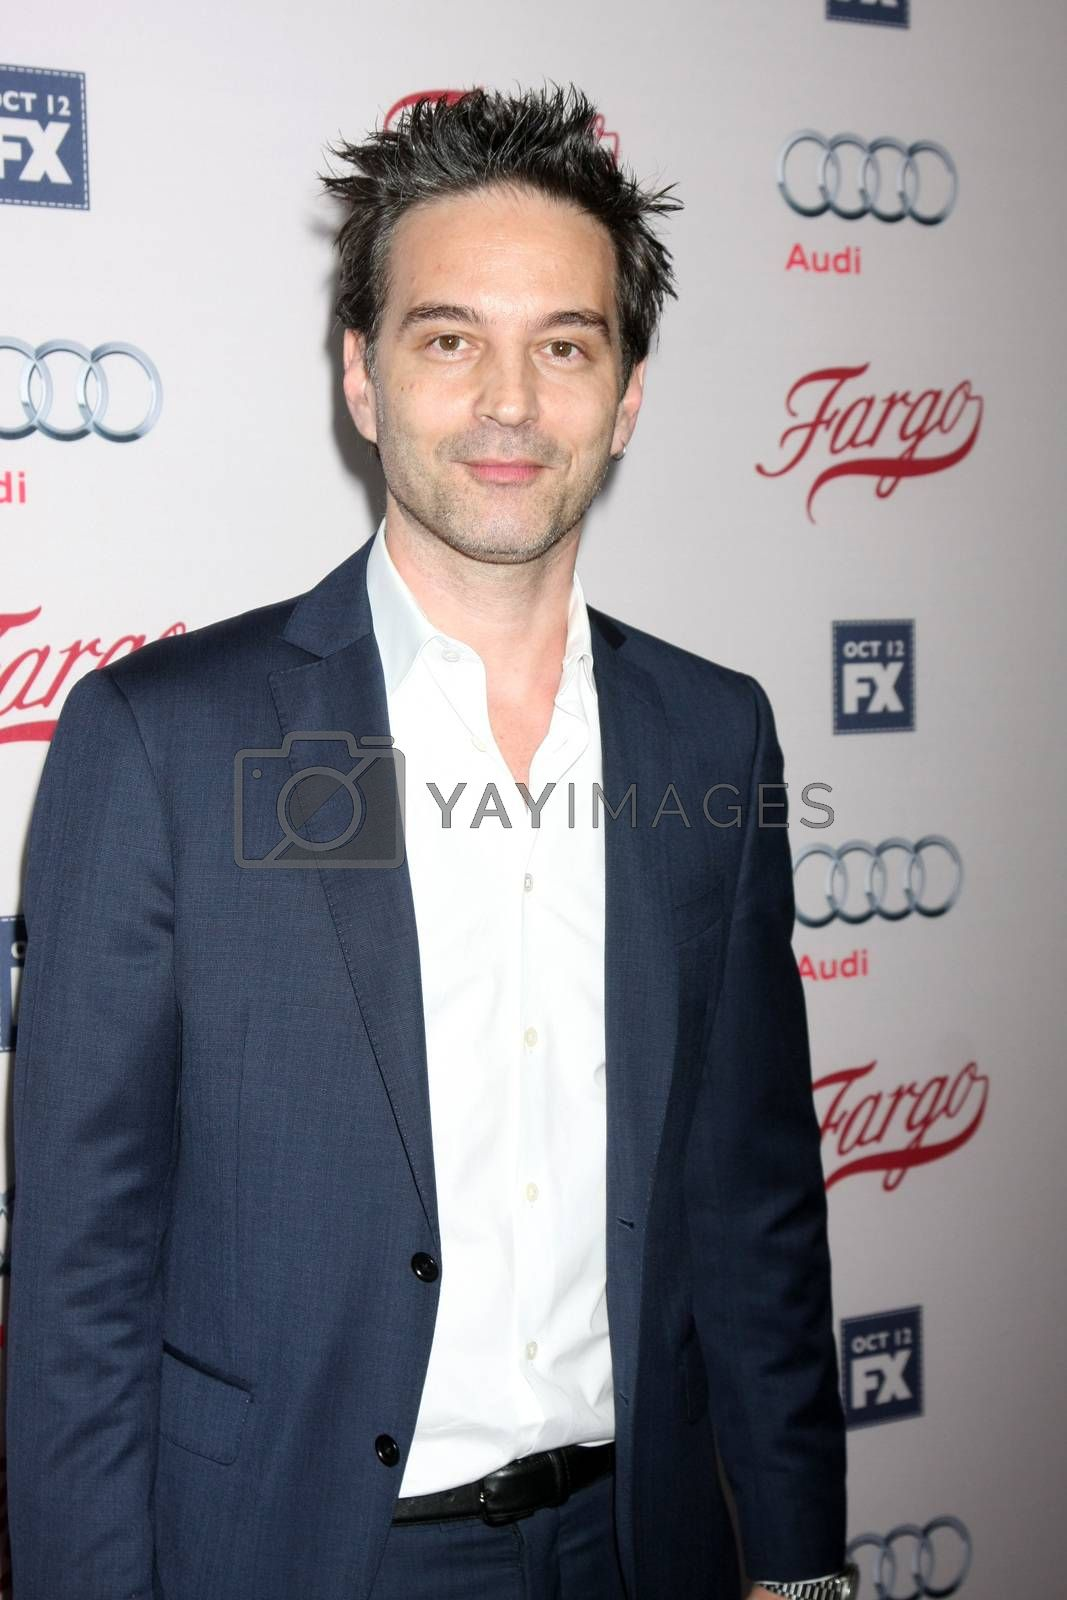 """Jeff Russo at the """"Fargo"""" Season 2 Premiere Screening, ArcLight, Hollywood, CA 10-07-15/ImageCollect by ImageCollect"""